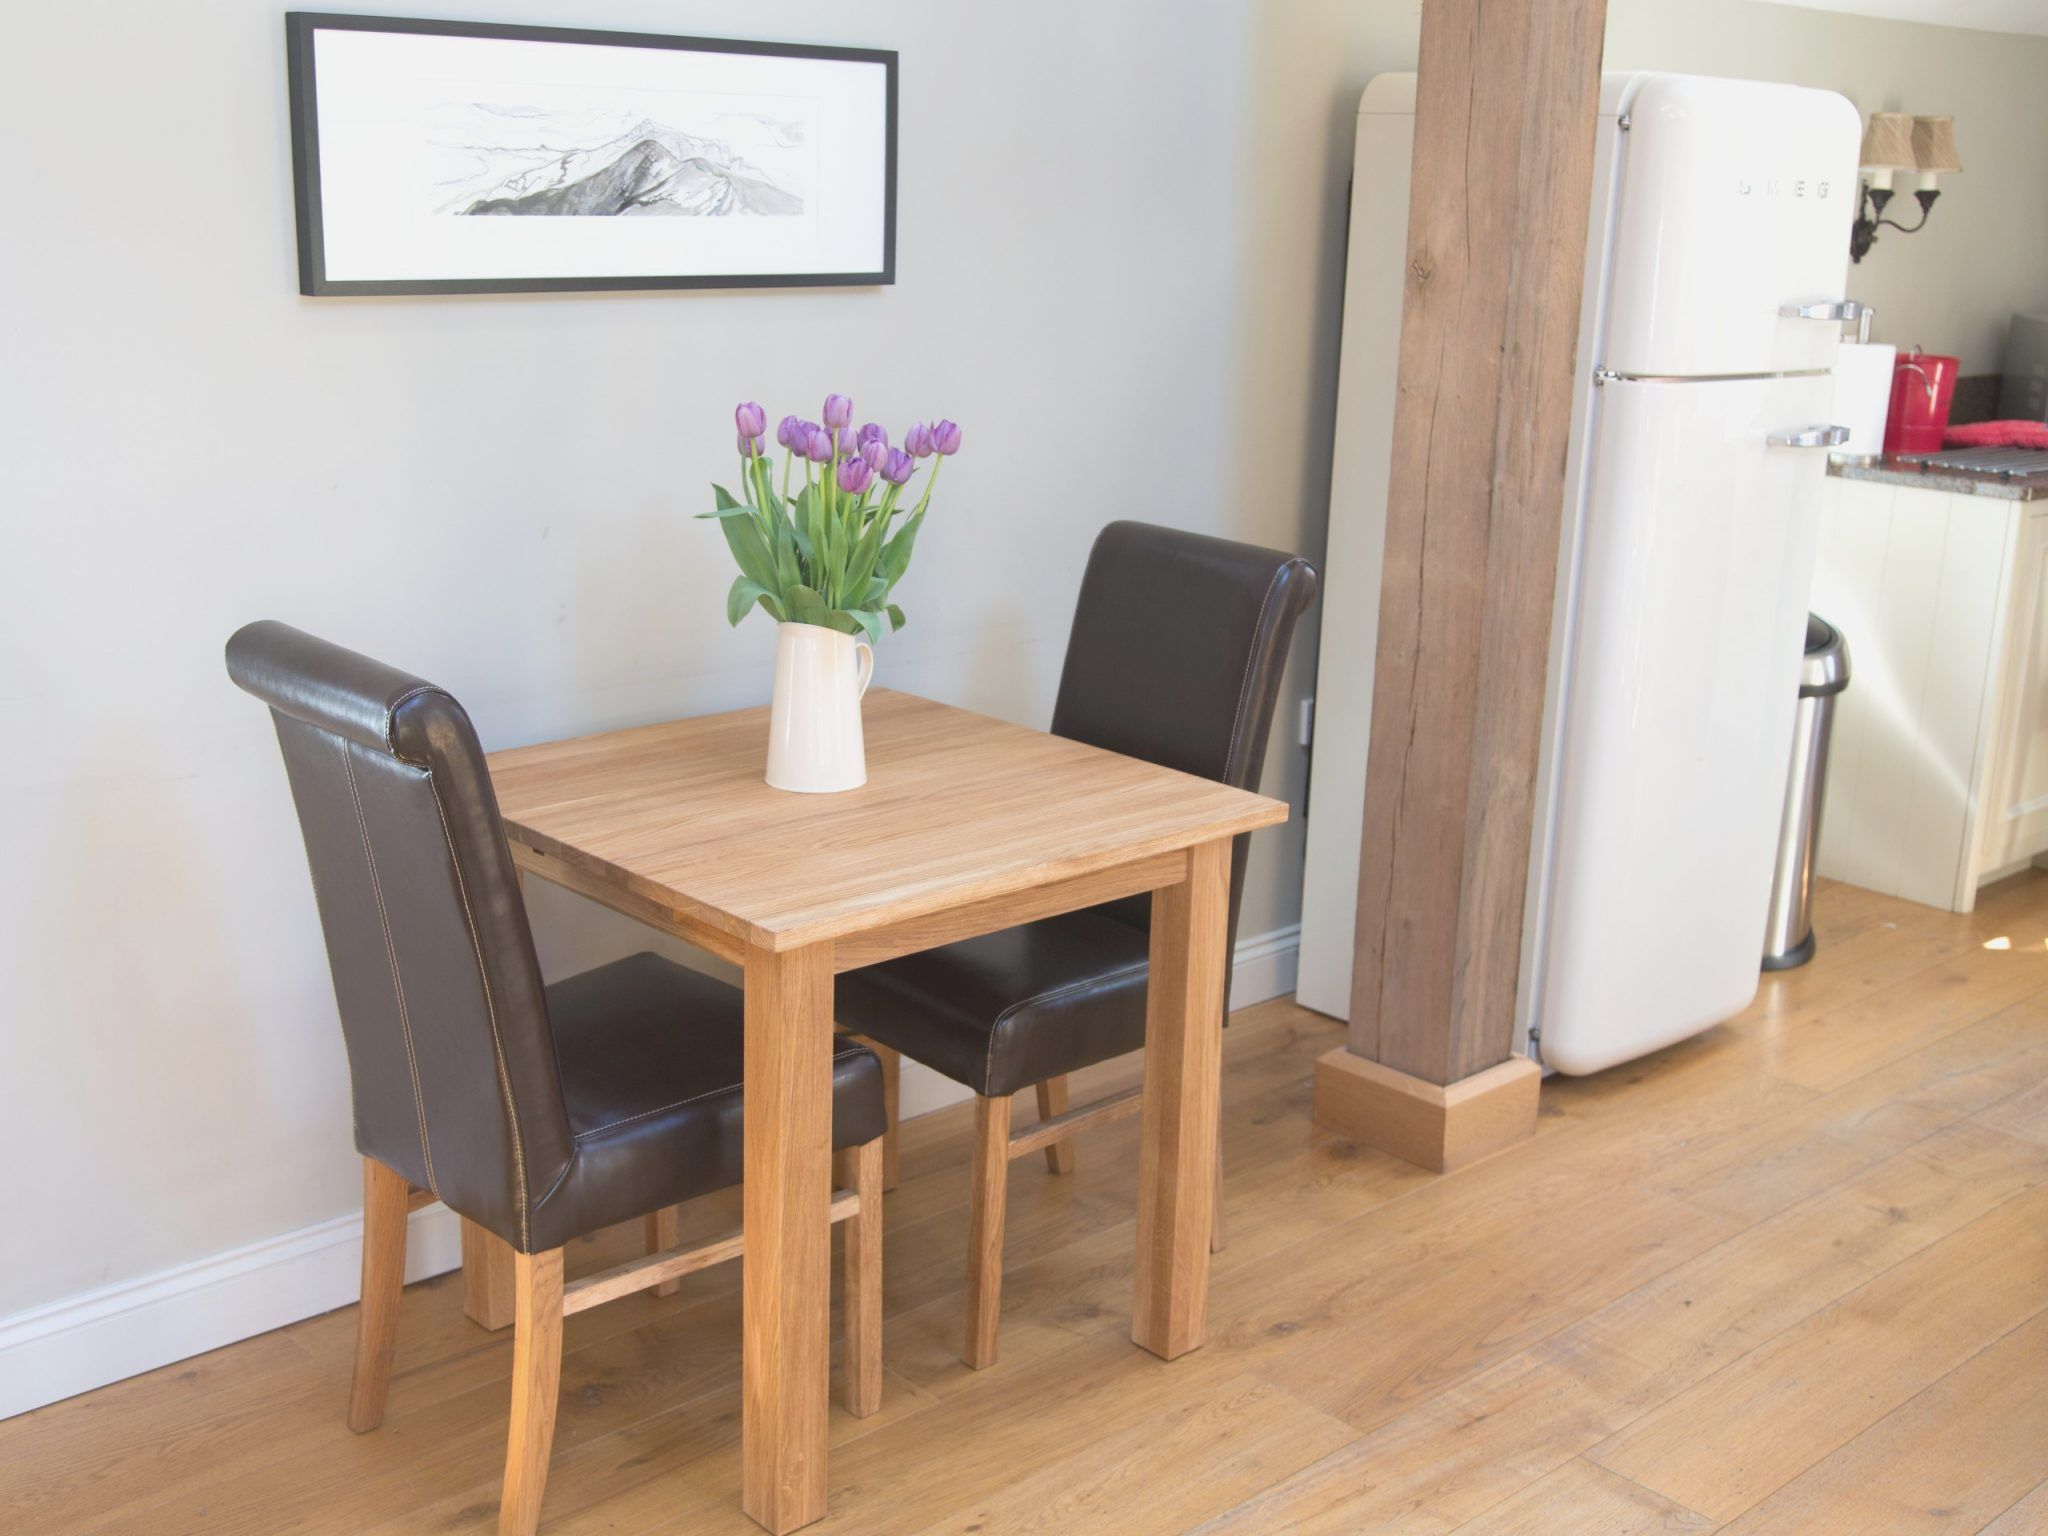 Small Kitchen Table With 2 Chairs Kitchen Table With 2 Chairs And Bench Small Drop Leaf Kitc Small Dining Table Square Kitchen Tables Kitchen Table Settings